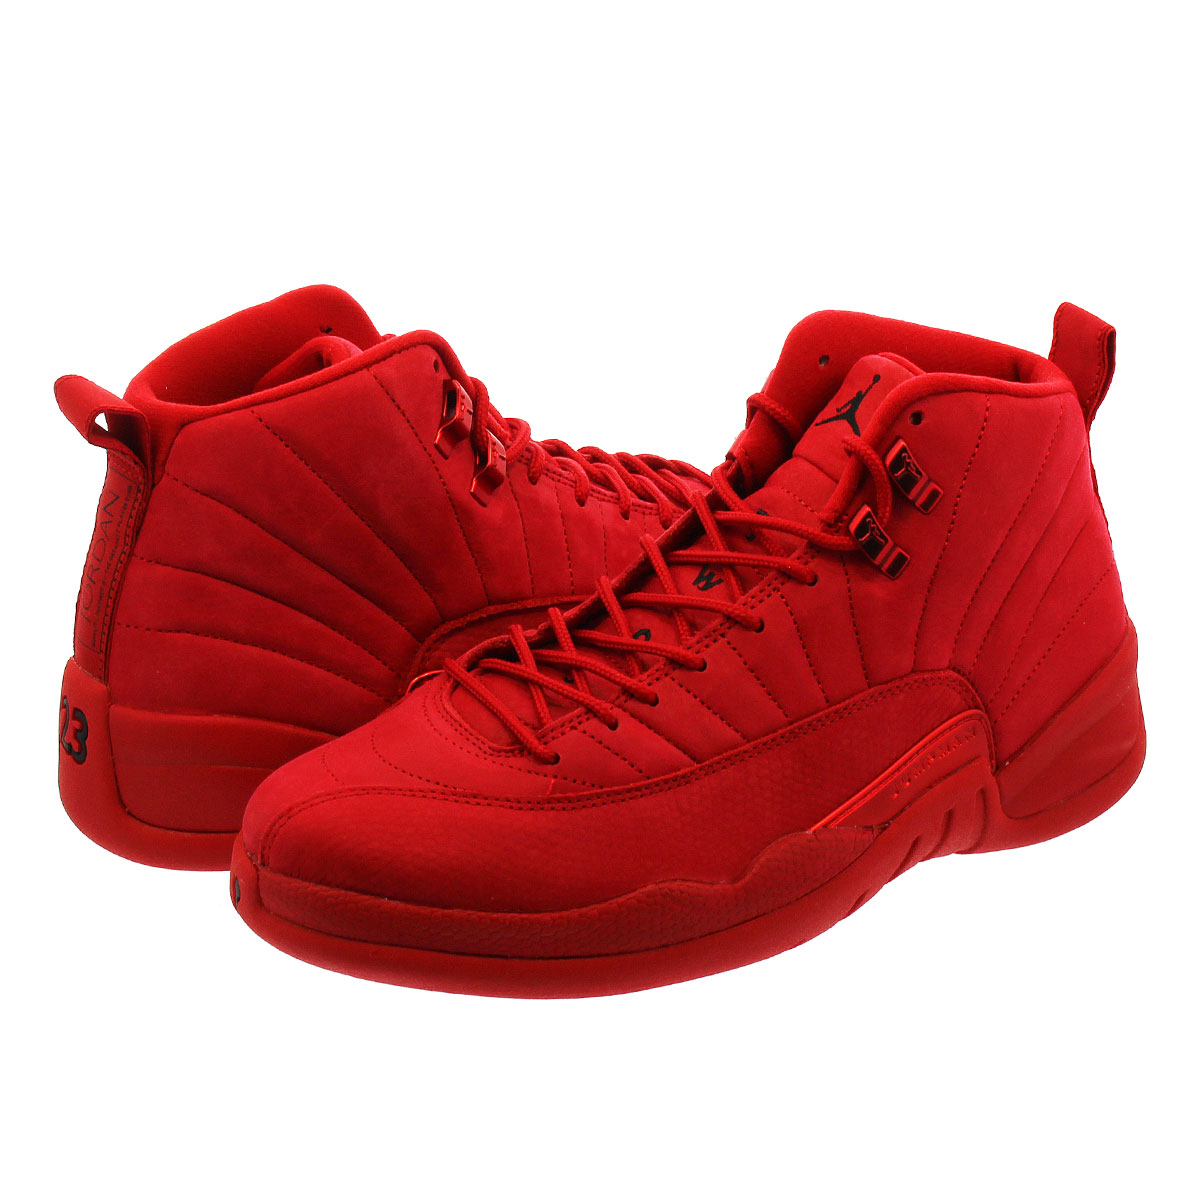 new product 403a4 65e5e SELECT SHOP LOWTEX: NIKE AIR JORDAN 12 RETRO Nike Air Jordan ...